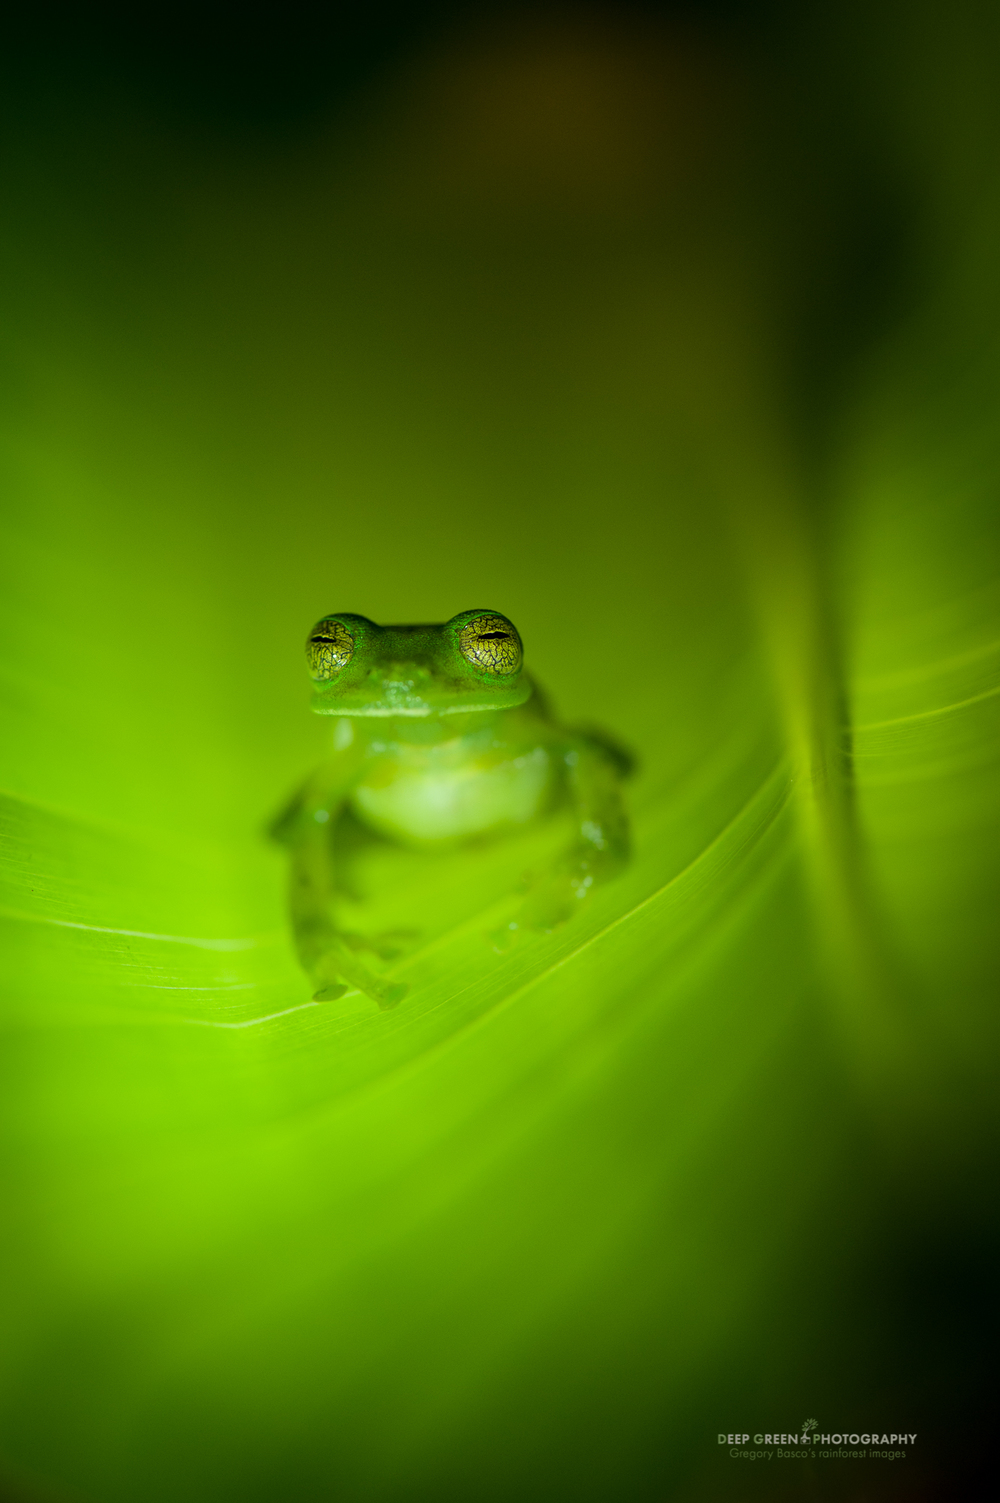 I used three maglite flashlights (I held one, a friend held the other two) for this image of a nocturnal emerald glass frog. The bands of light and shadow would have been difficult to duplicate with flashes, even with snoots.